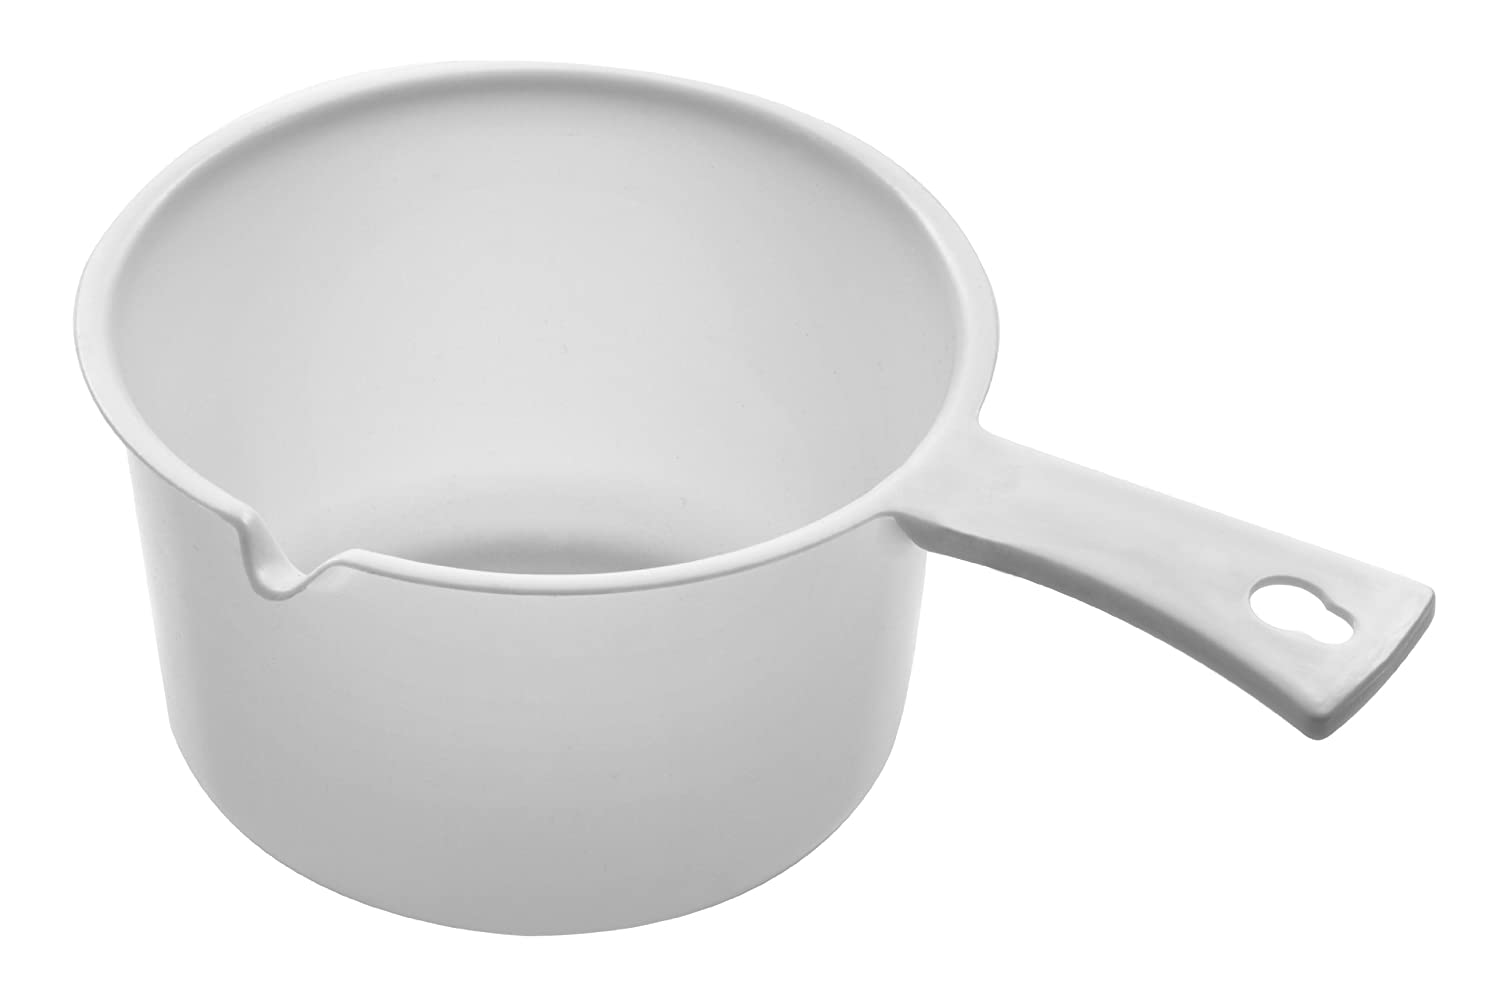 Premier Housewares Microwave Sauce Pans - White, Set of 2 0805230